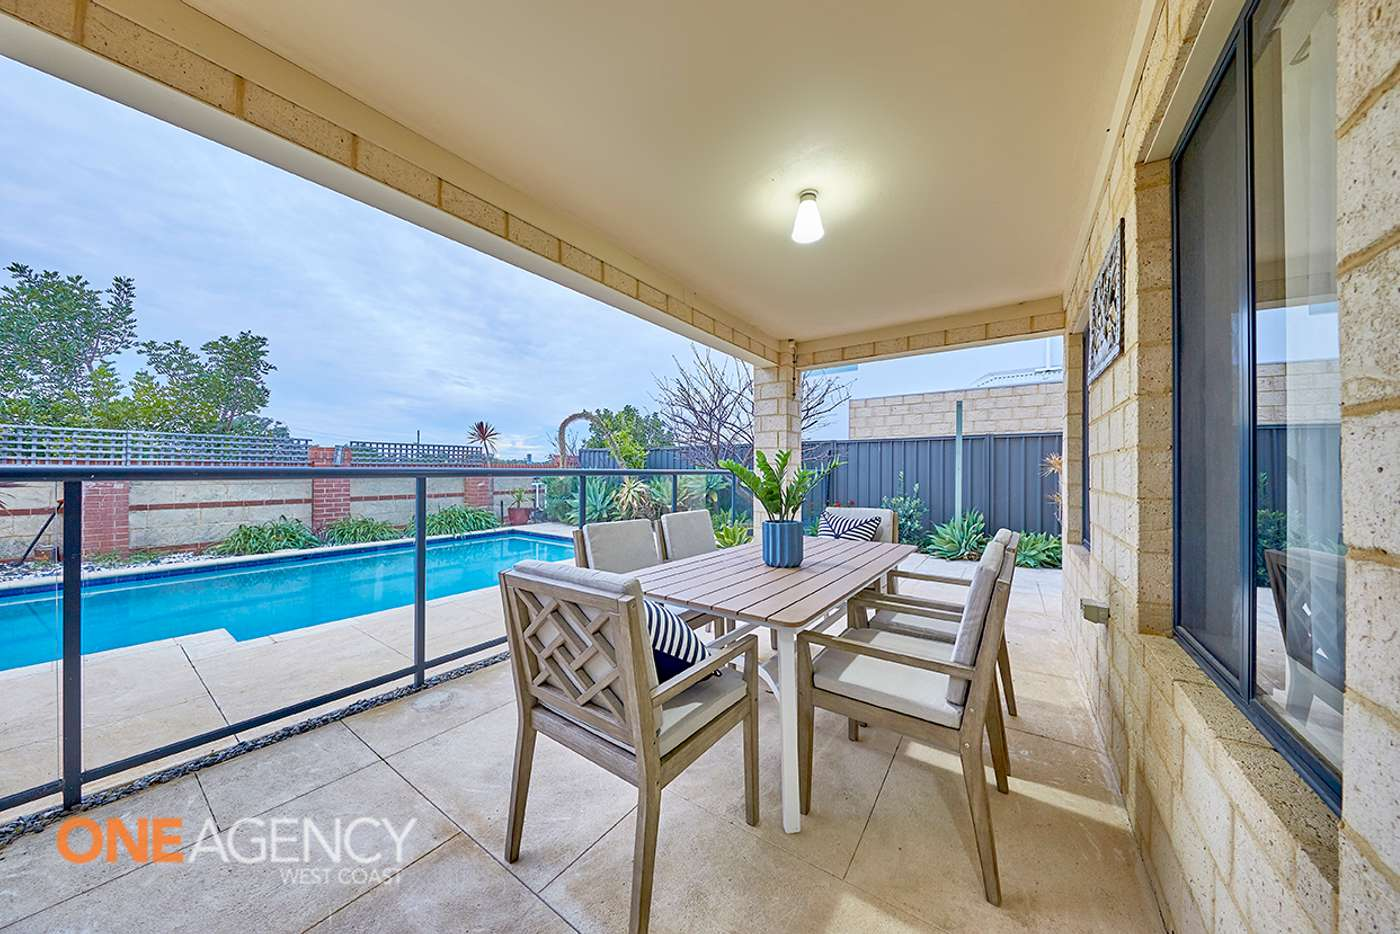 Fifth view of Homely house listing, 14 Houston Place, Mount Claremont WA 6010